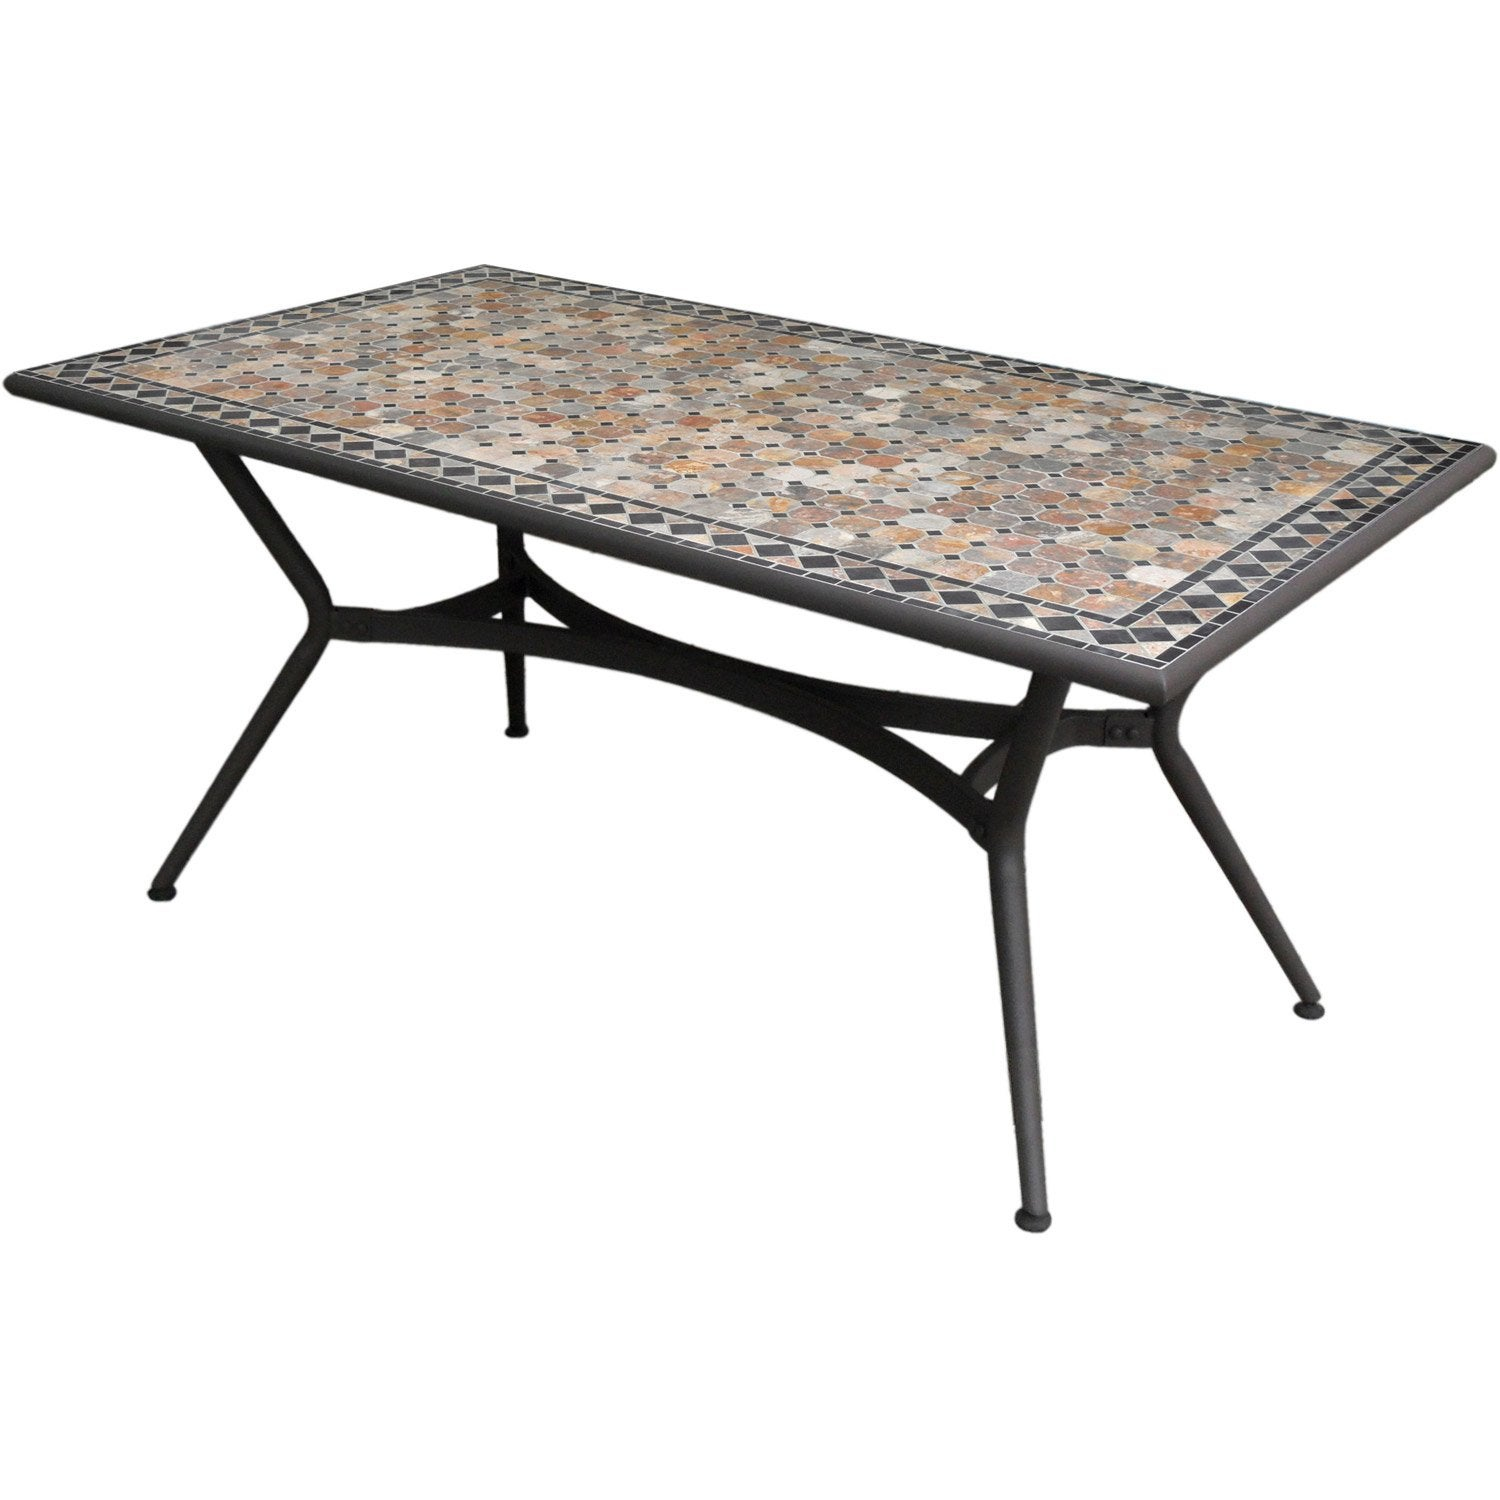 Table de jardin marocco rectangulaire bronze 6 personnes for Table de nuit leroy merlin